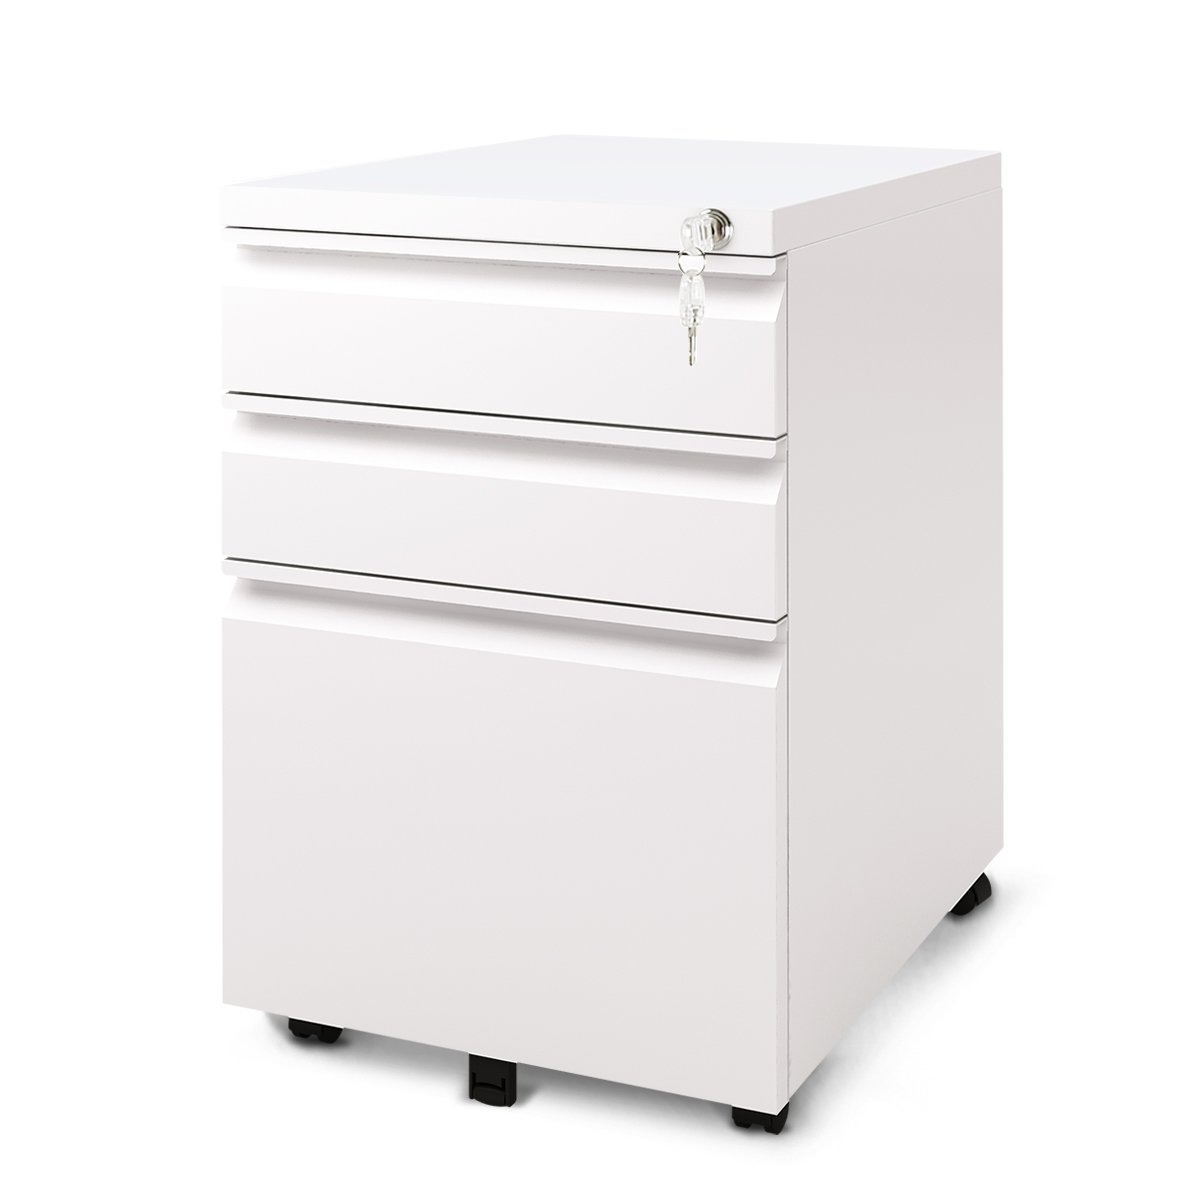 Best Rated In Office File Cabinets Amp Helpful Customer